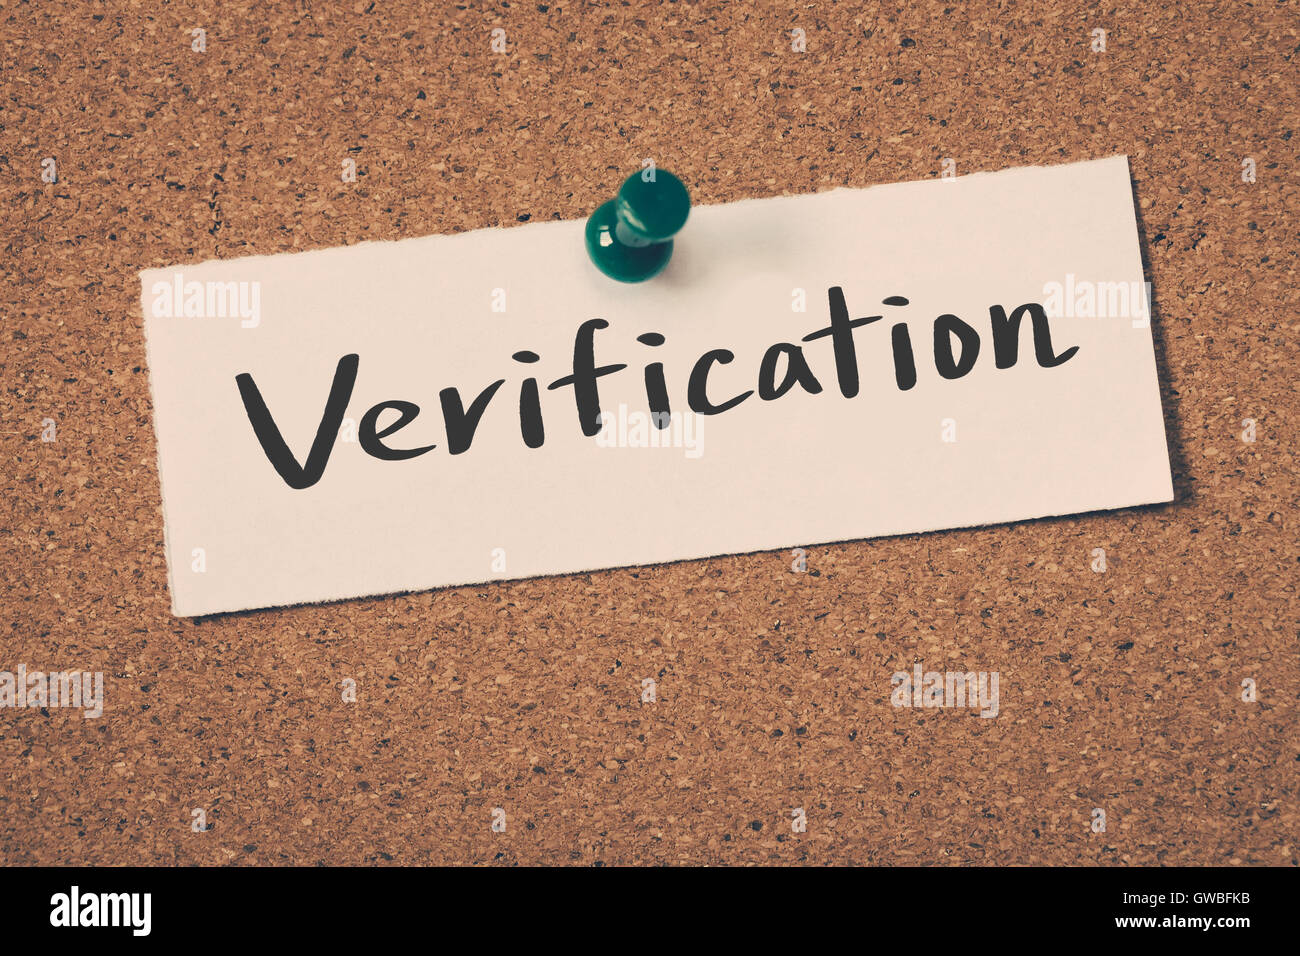 Verification Photo Stock